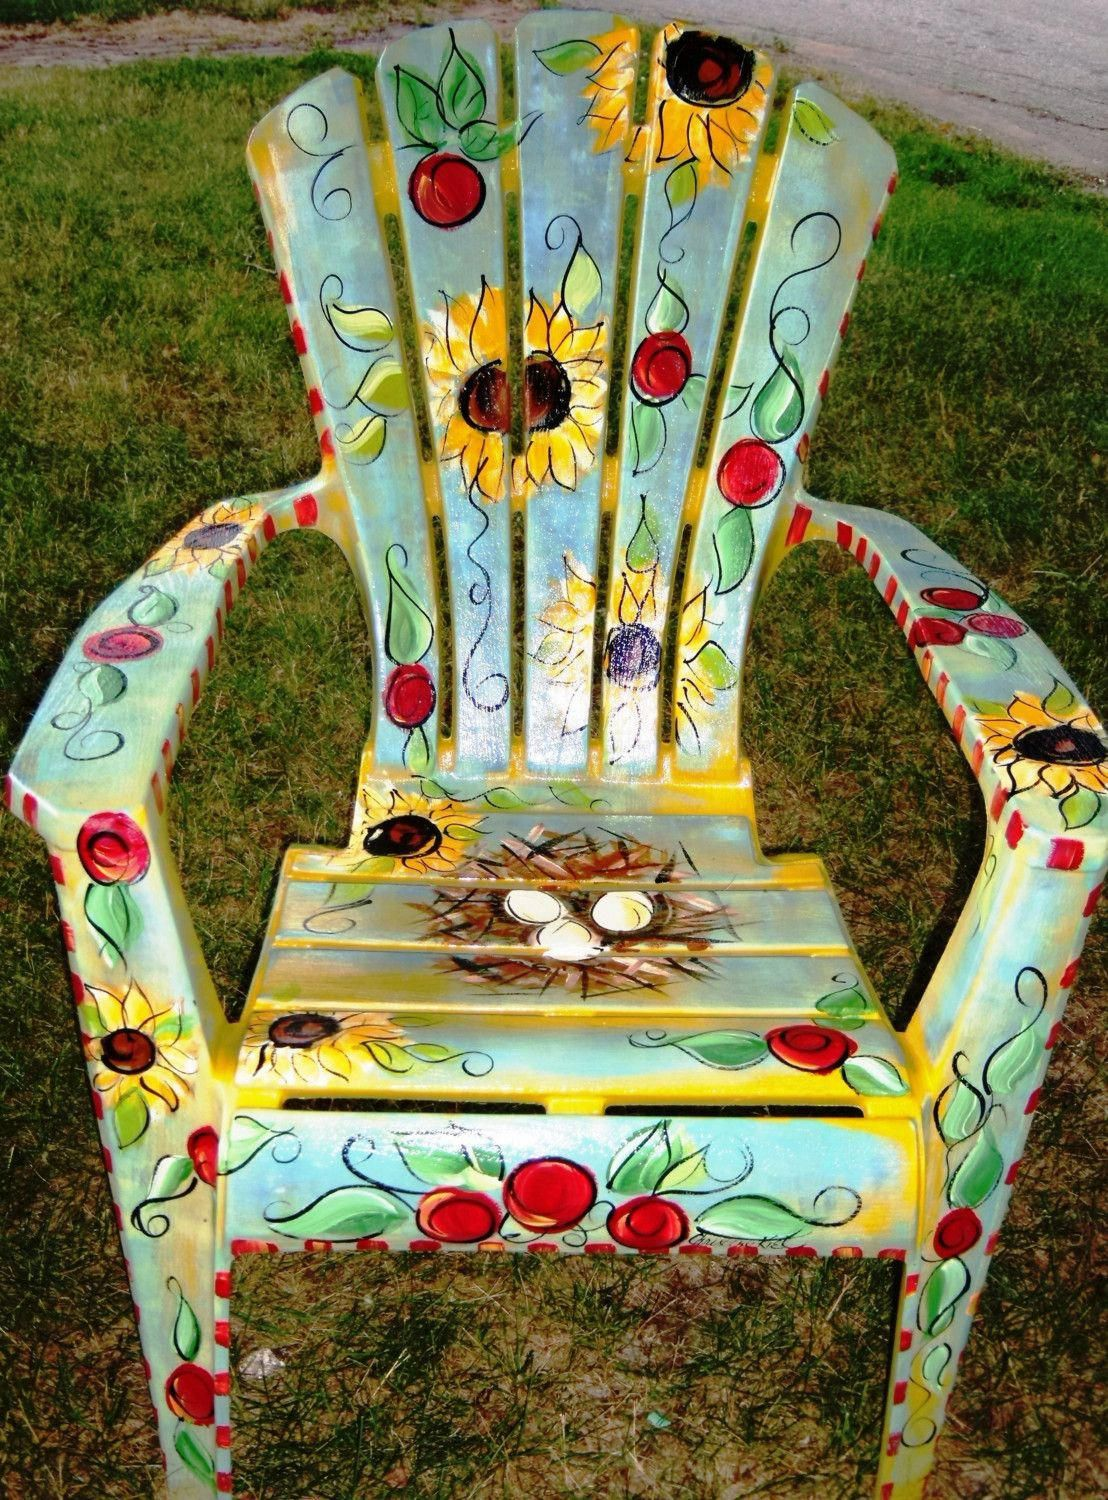 Funky Decor, a must read pin transformation, funky home decor thrifty stores number 4252303413 funkyhomedecorthriftystores is part of Hand painted chairs -